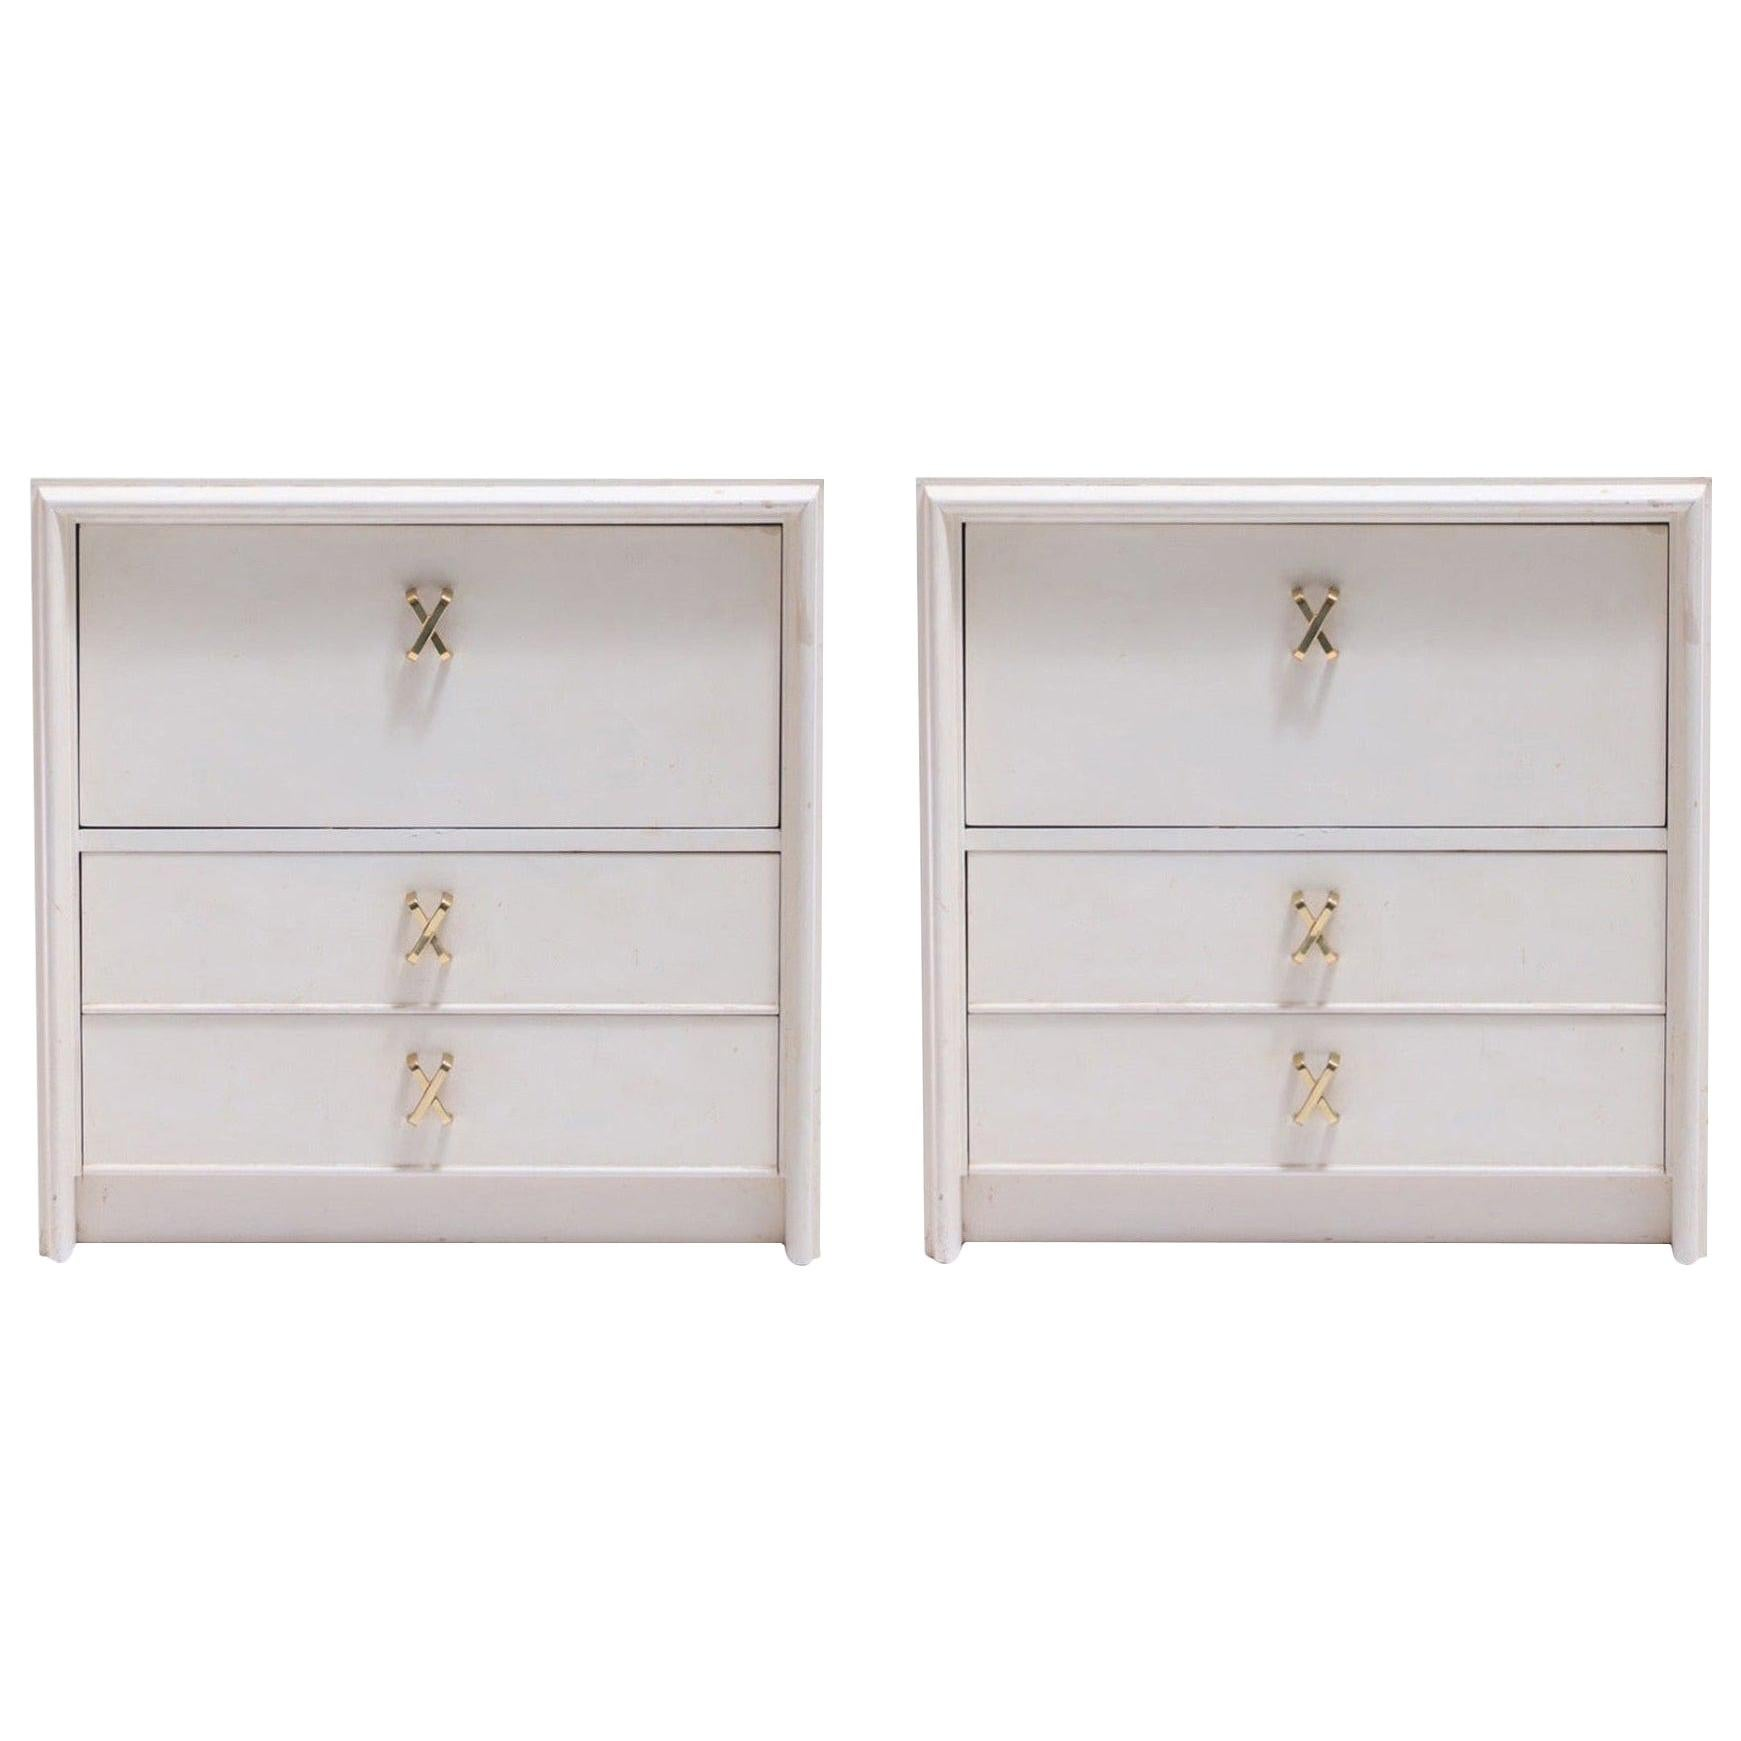 Pair of Paul Frankl Ivory Lacquered Nightstands with Brass X Pulls, circa 1950